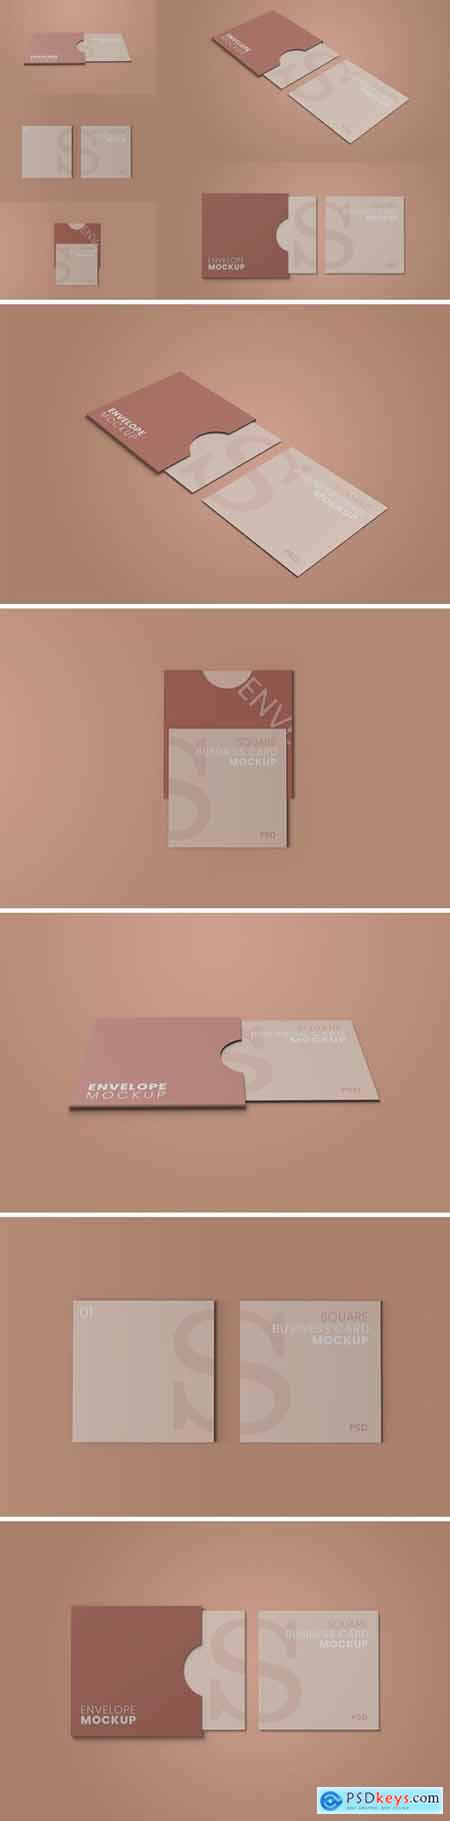 Square Envelope Mockup Vol 01